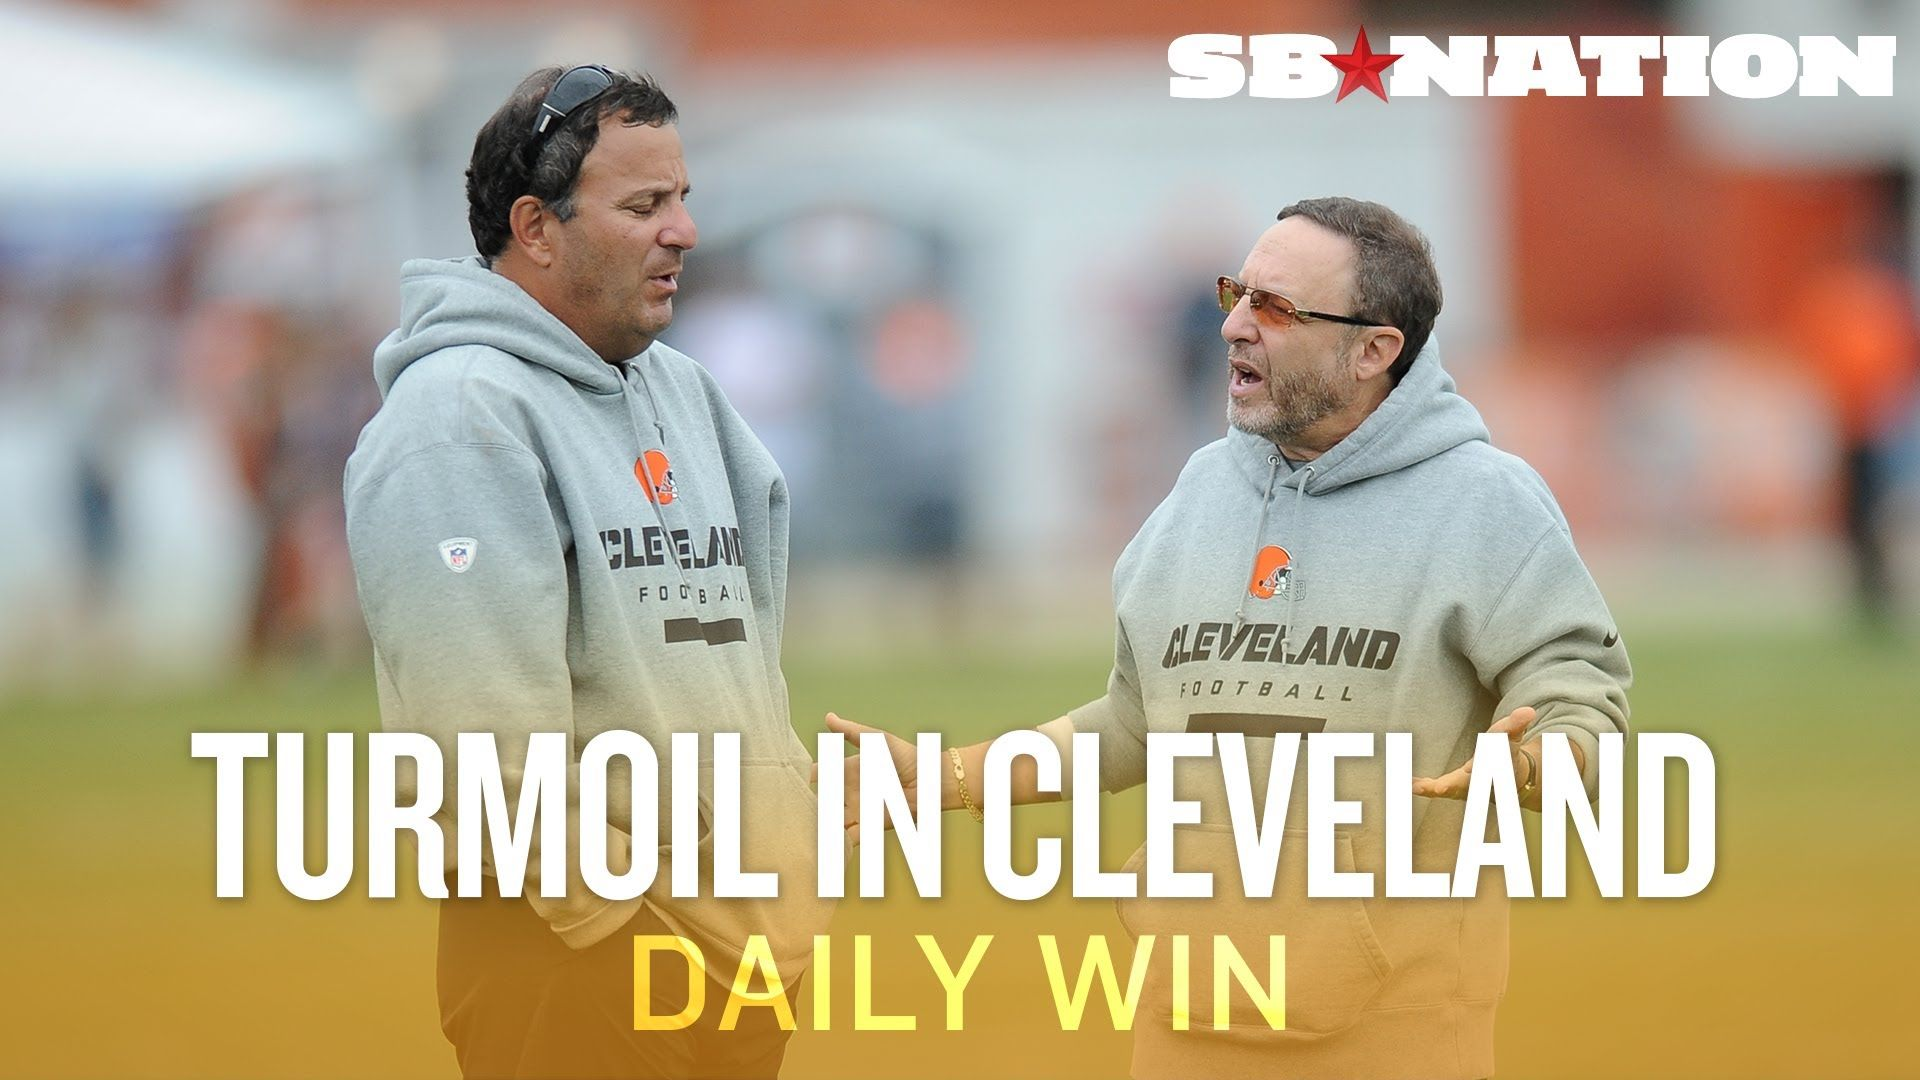 Turmoil in Cleveland - and reasons for hope (Daily Win)